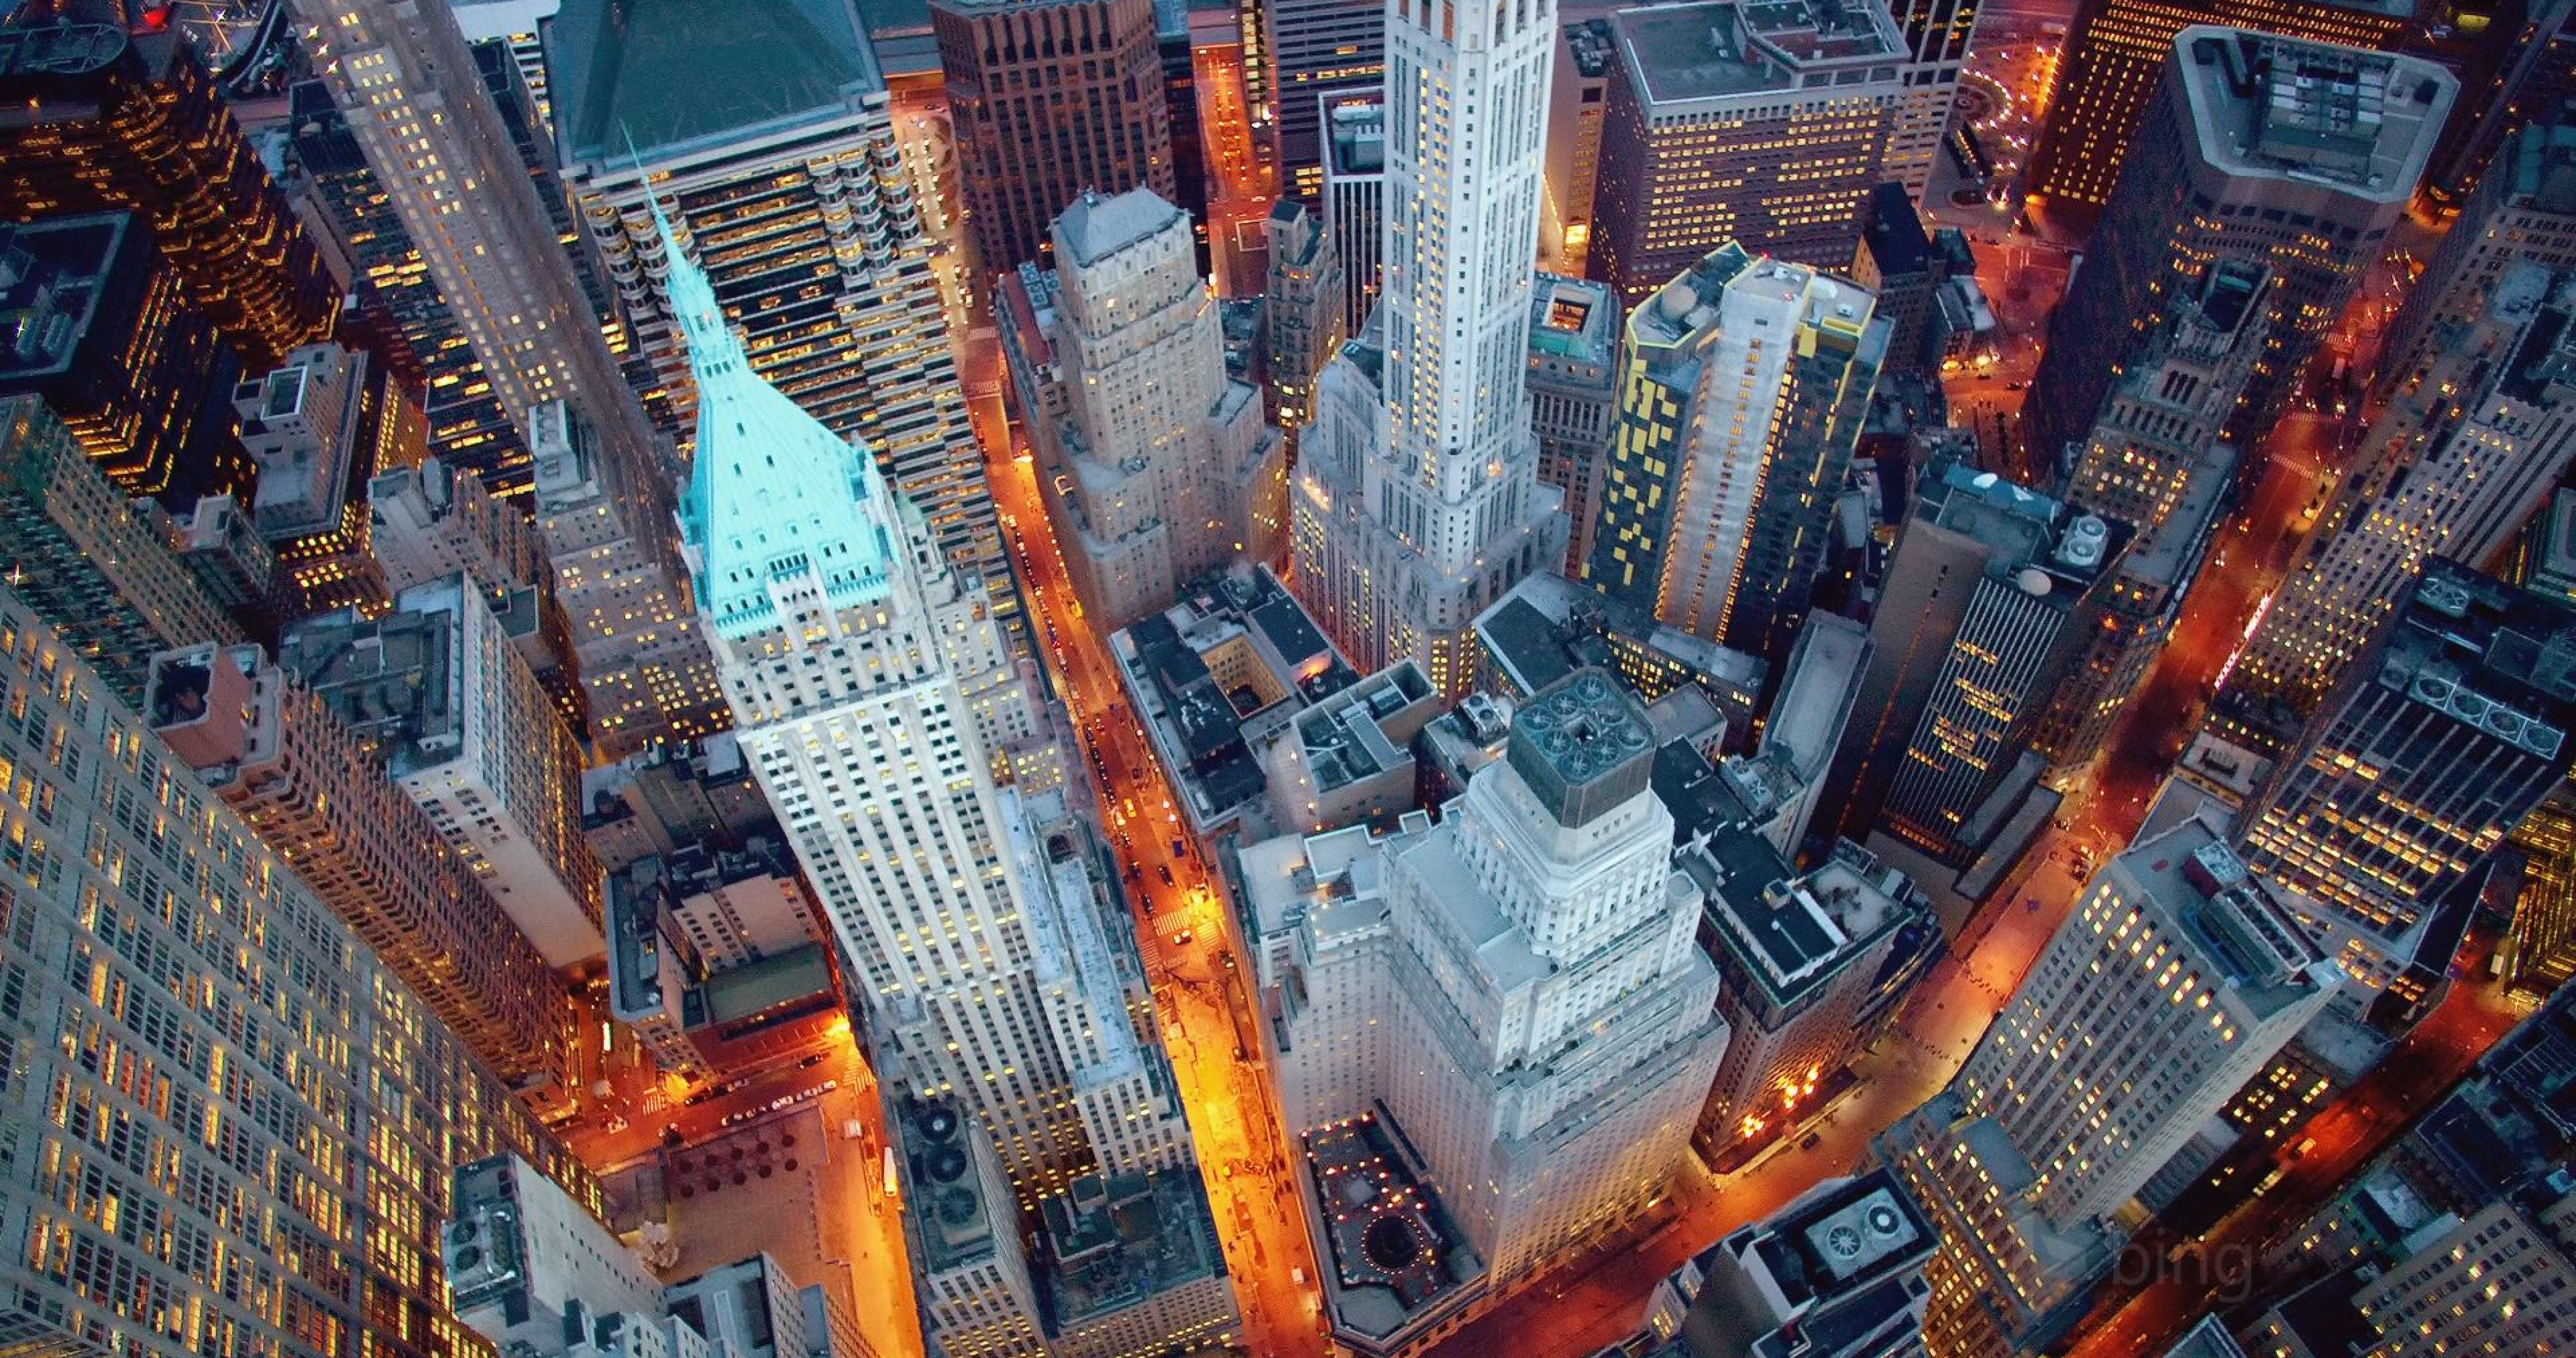 wall street night lights 4k ultra hd wallpaper (With images) | New ...